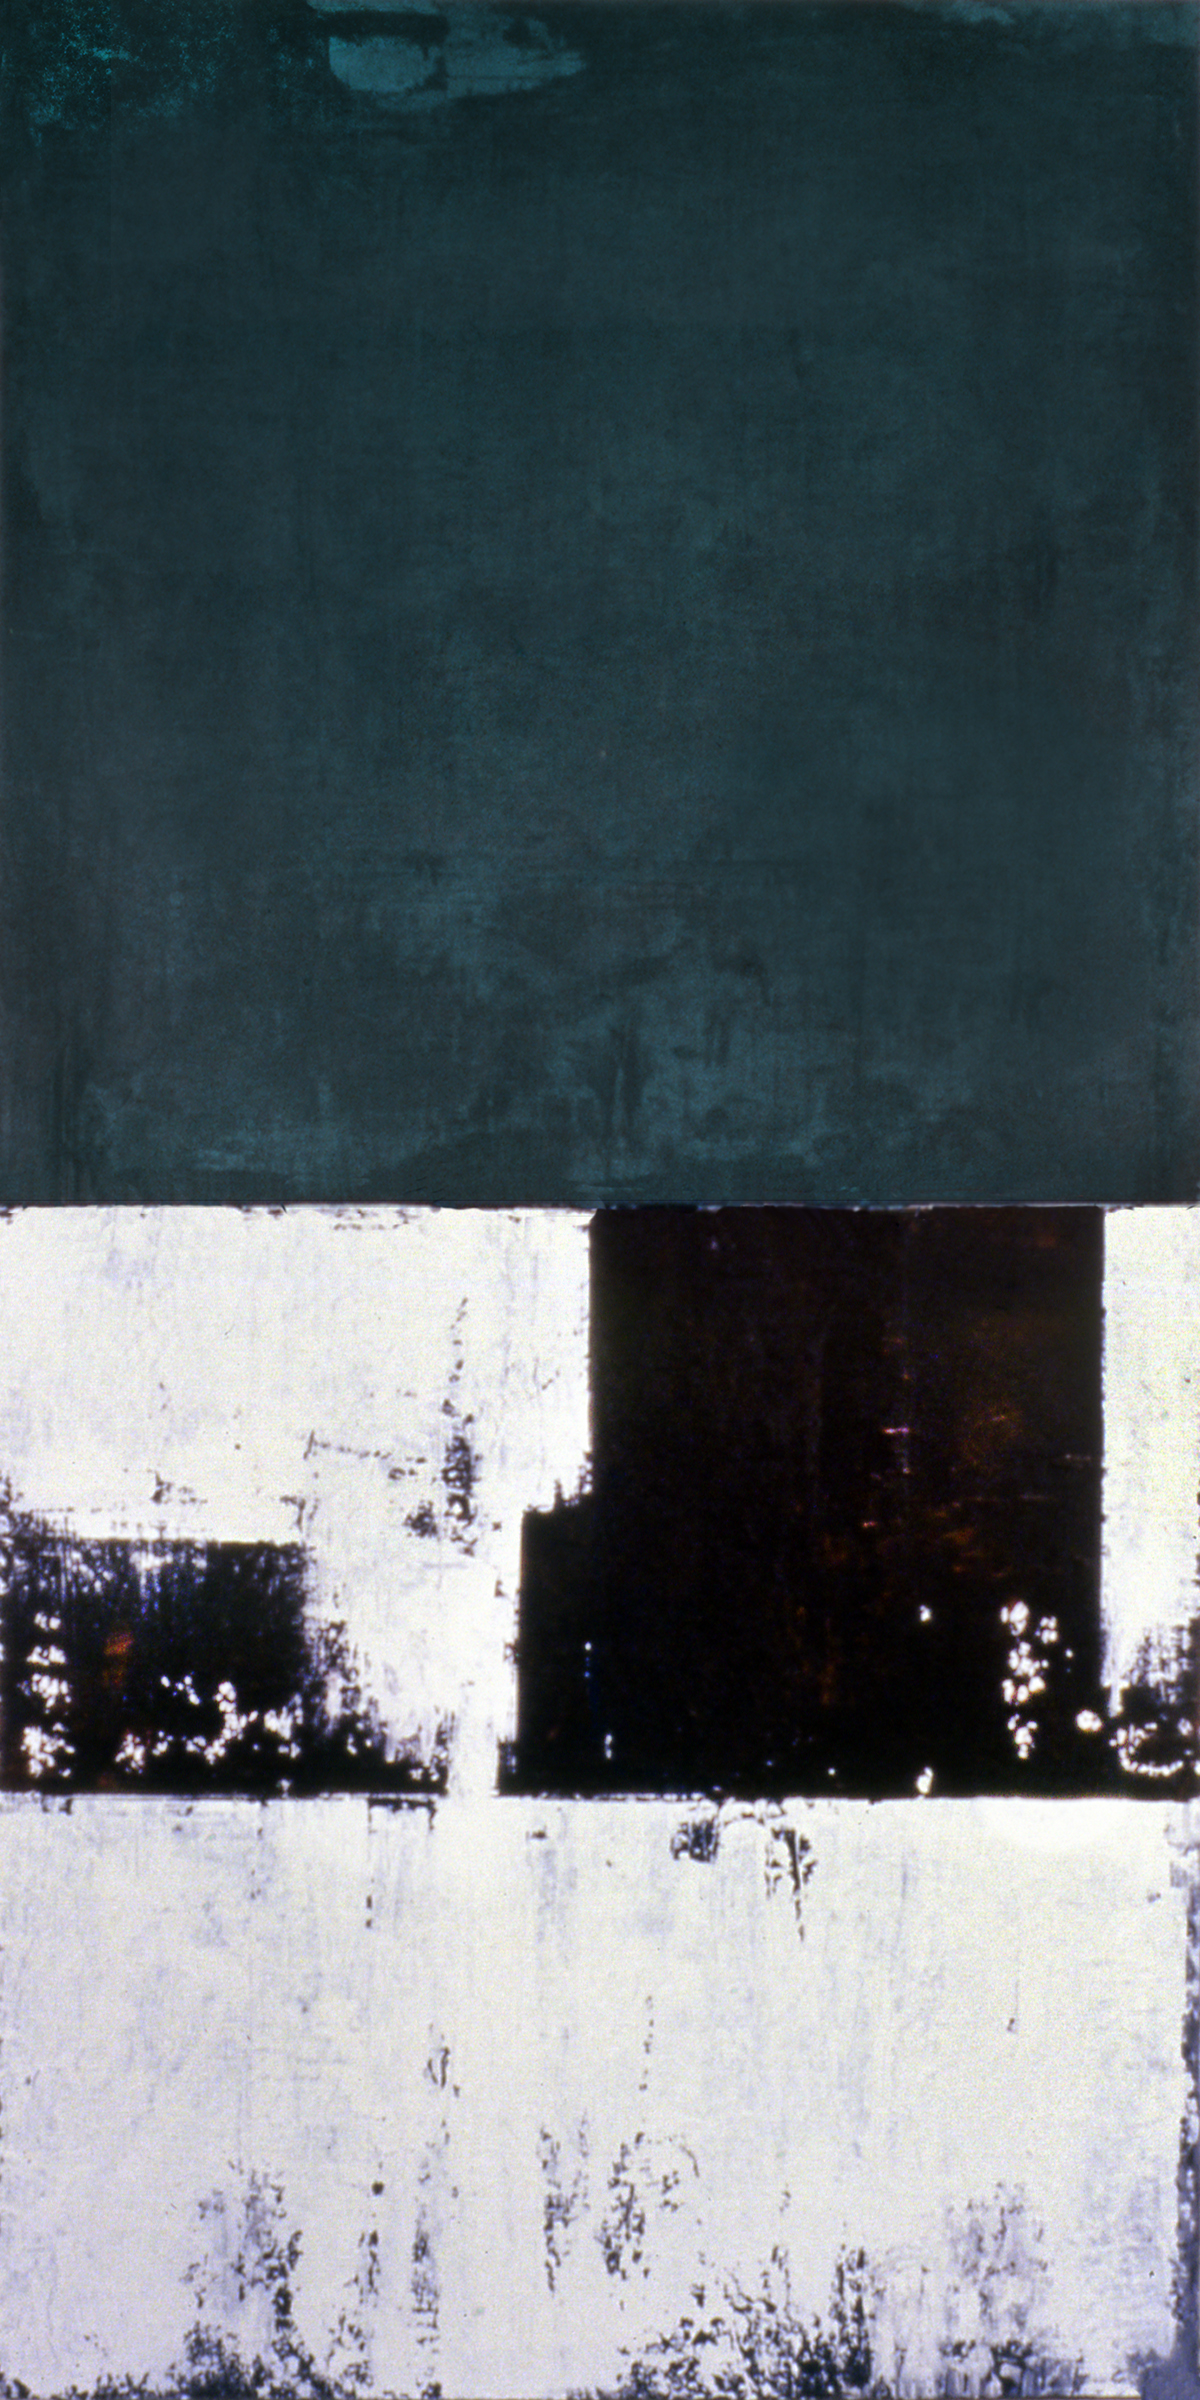 Island, 1991, Acrylic on canvas over panels, 72x 36 inches.